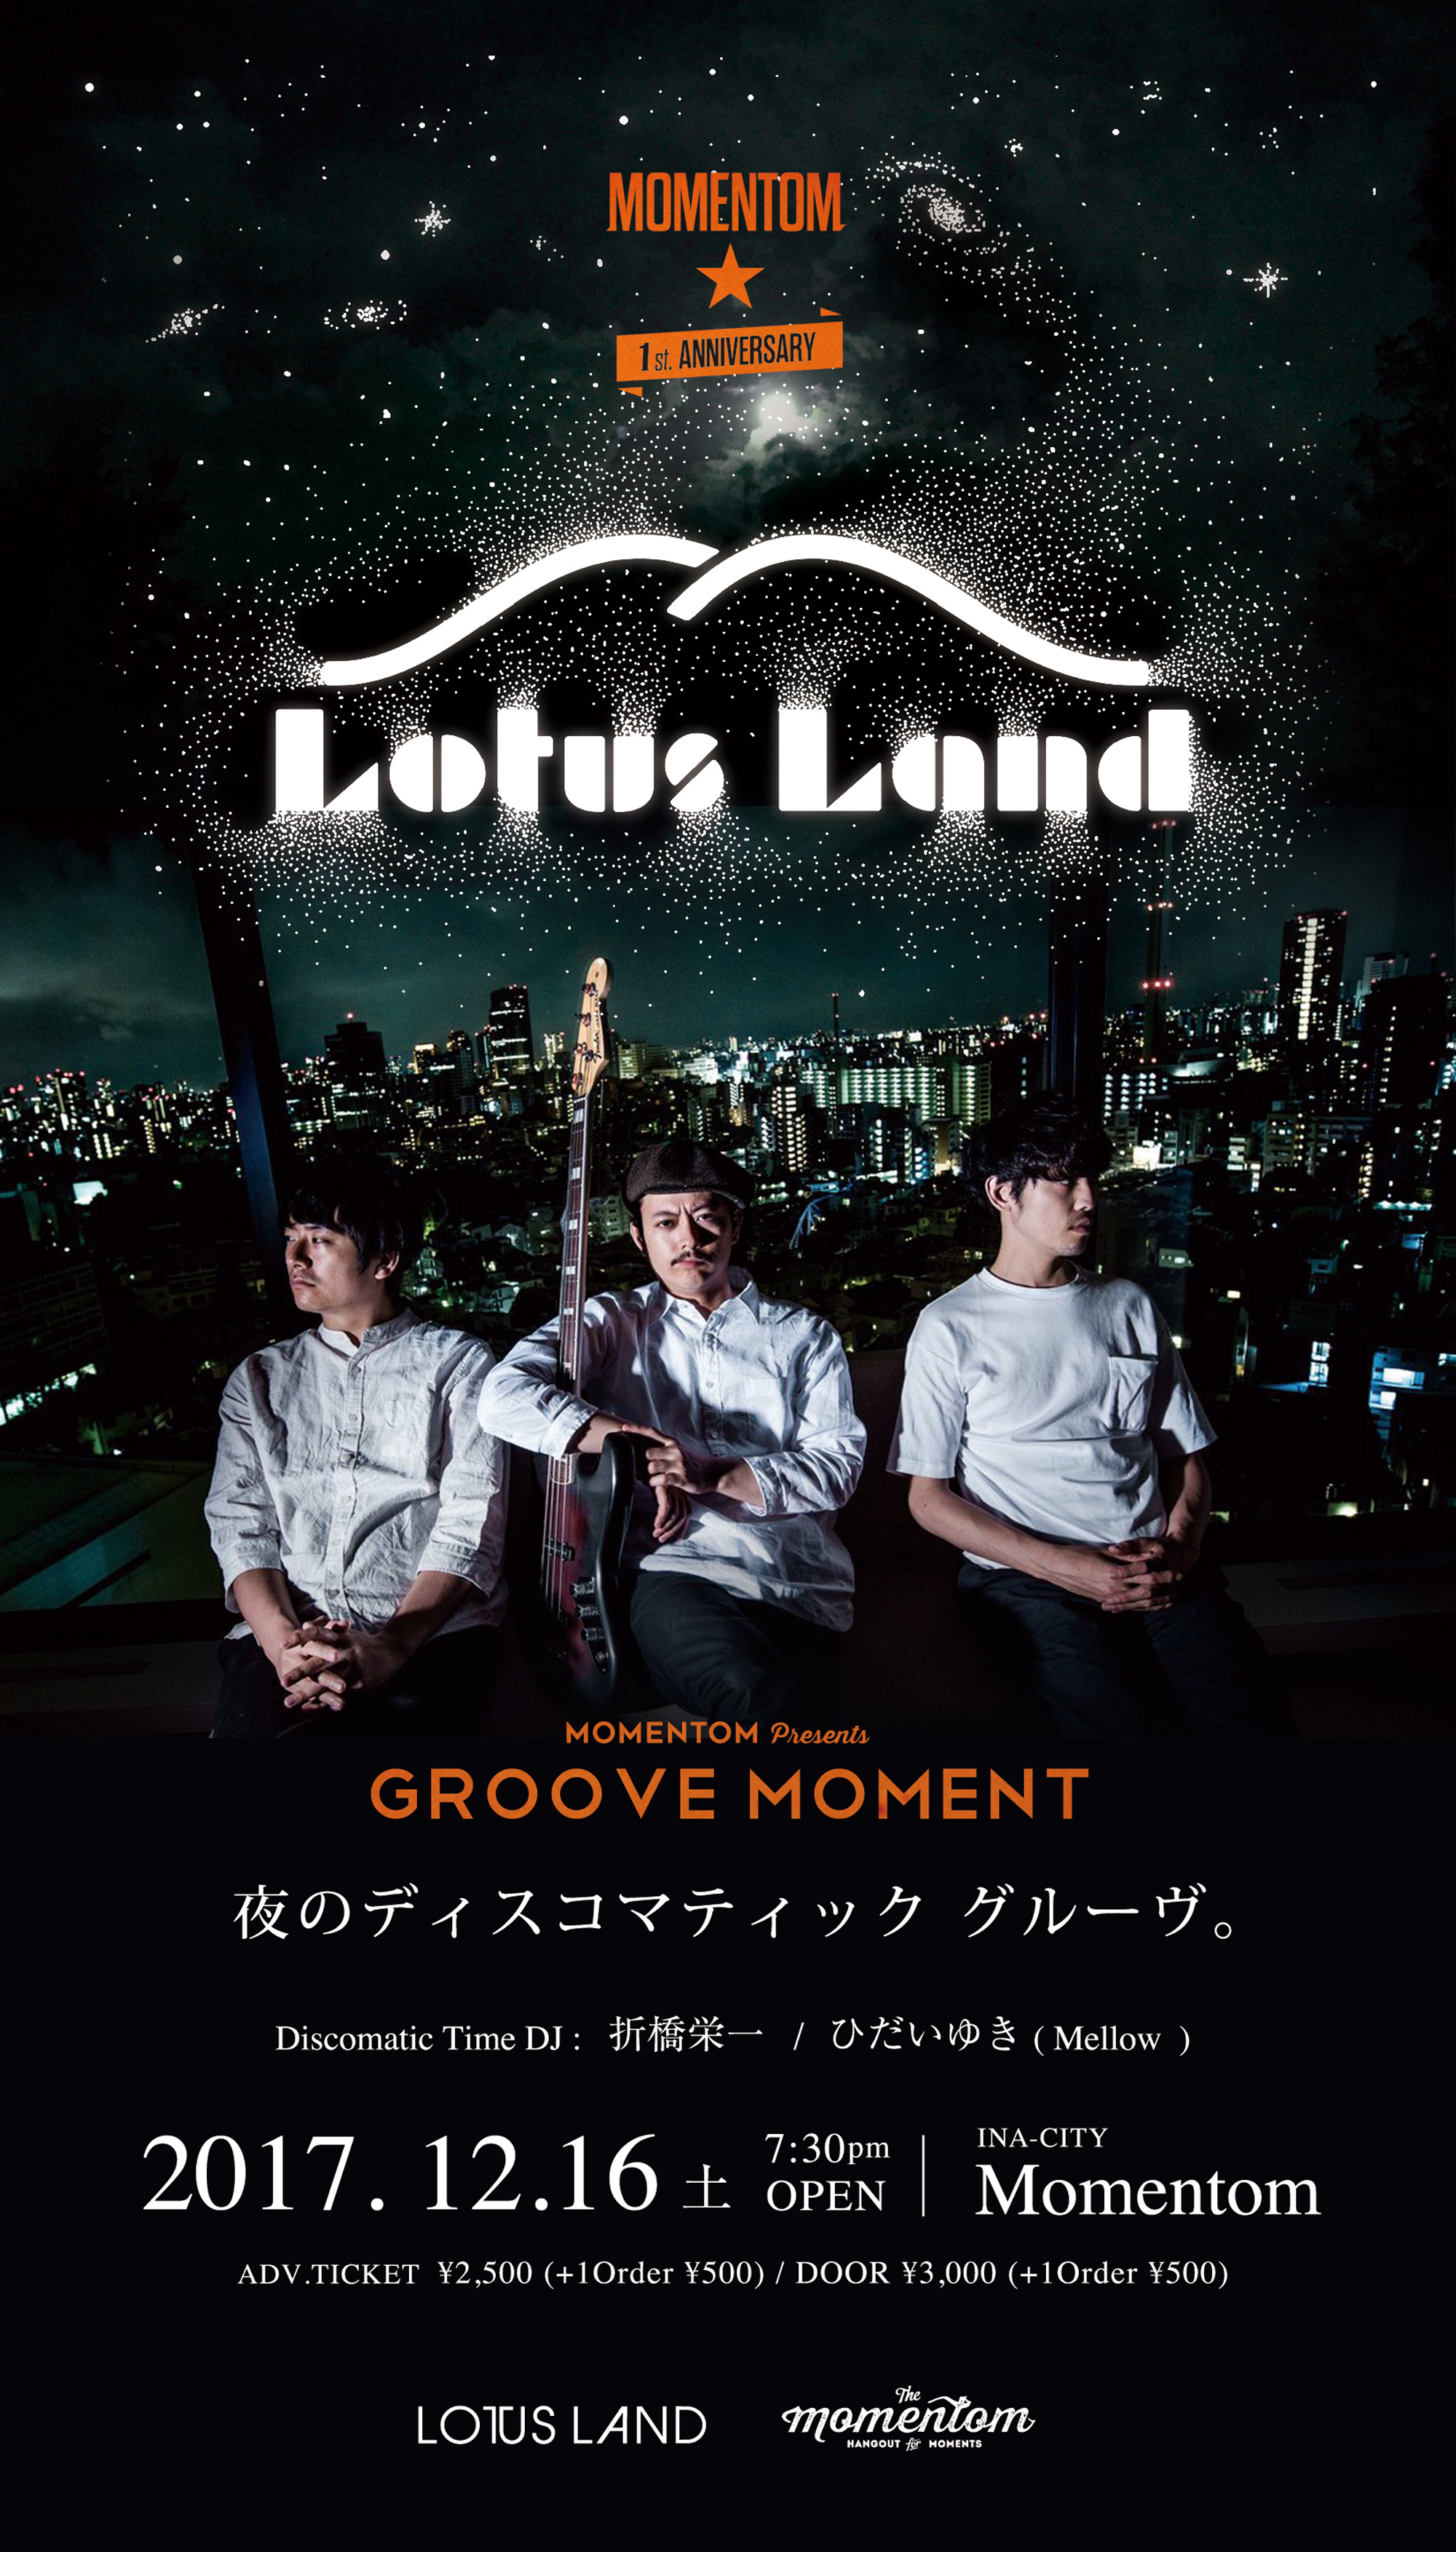 GROOVE MOMENT feat. LOTUS LAND